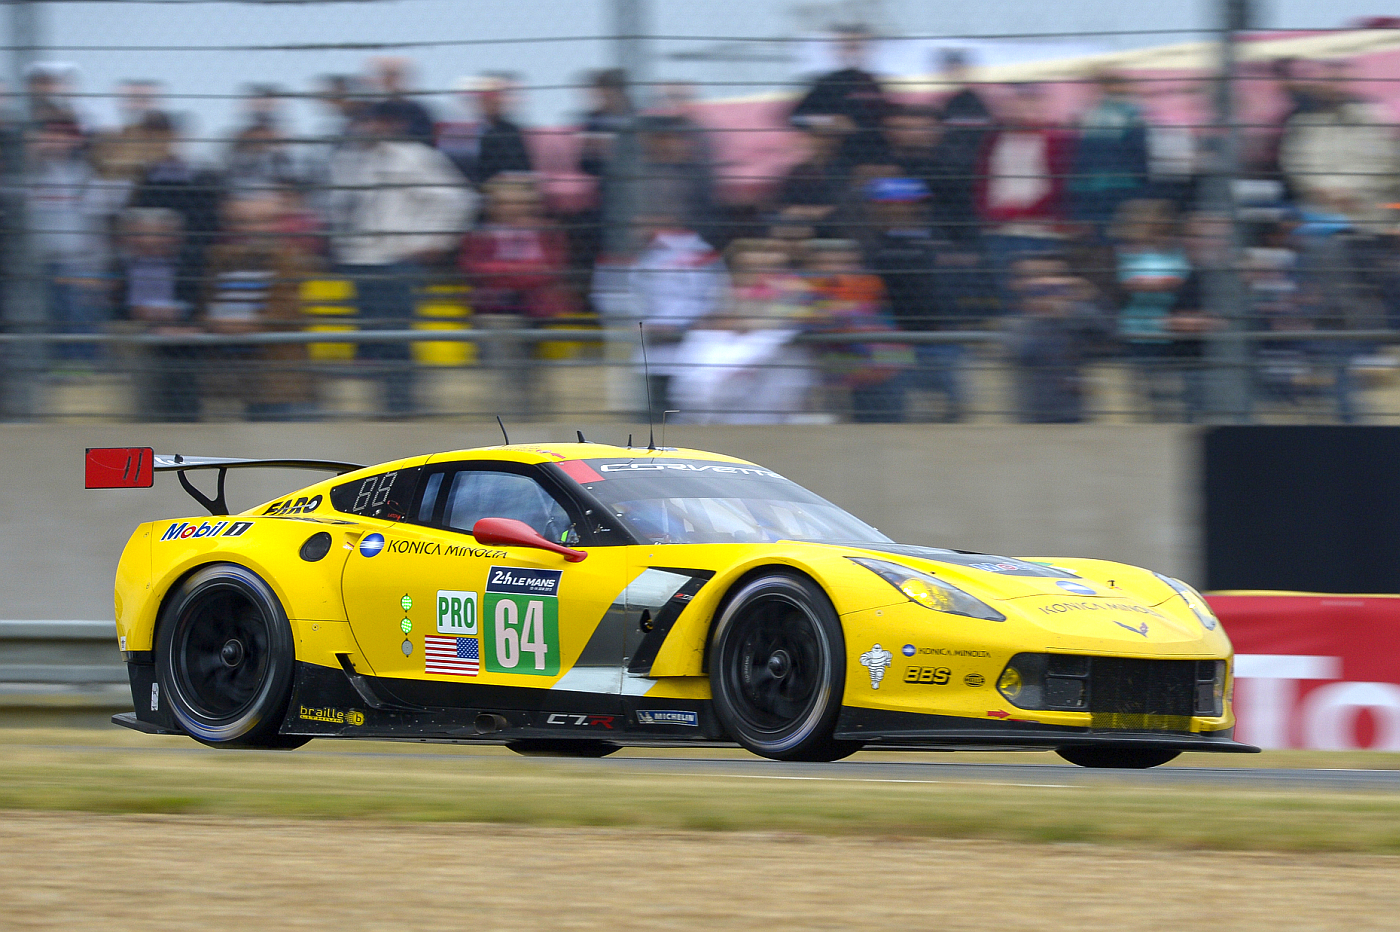 Will This Be Corvette Racing's Finest (24) Hour?